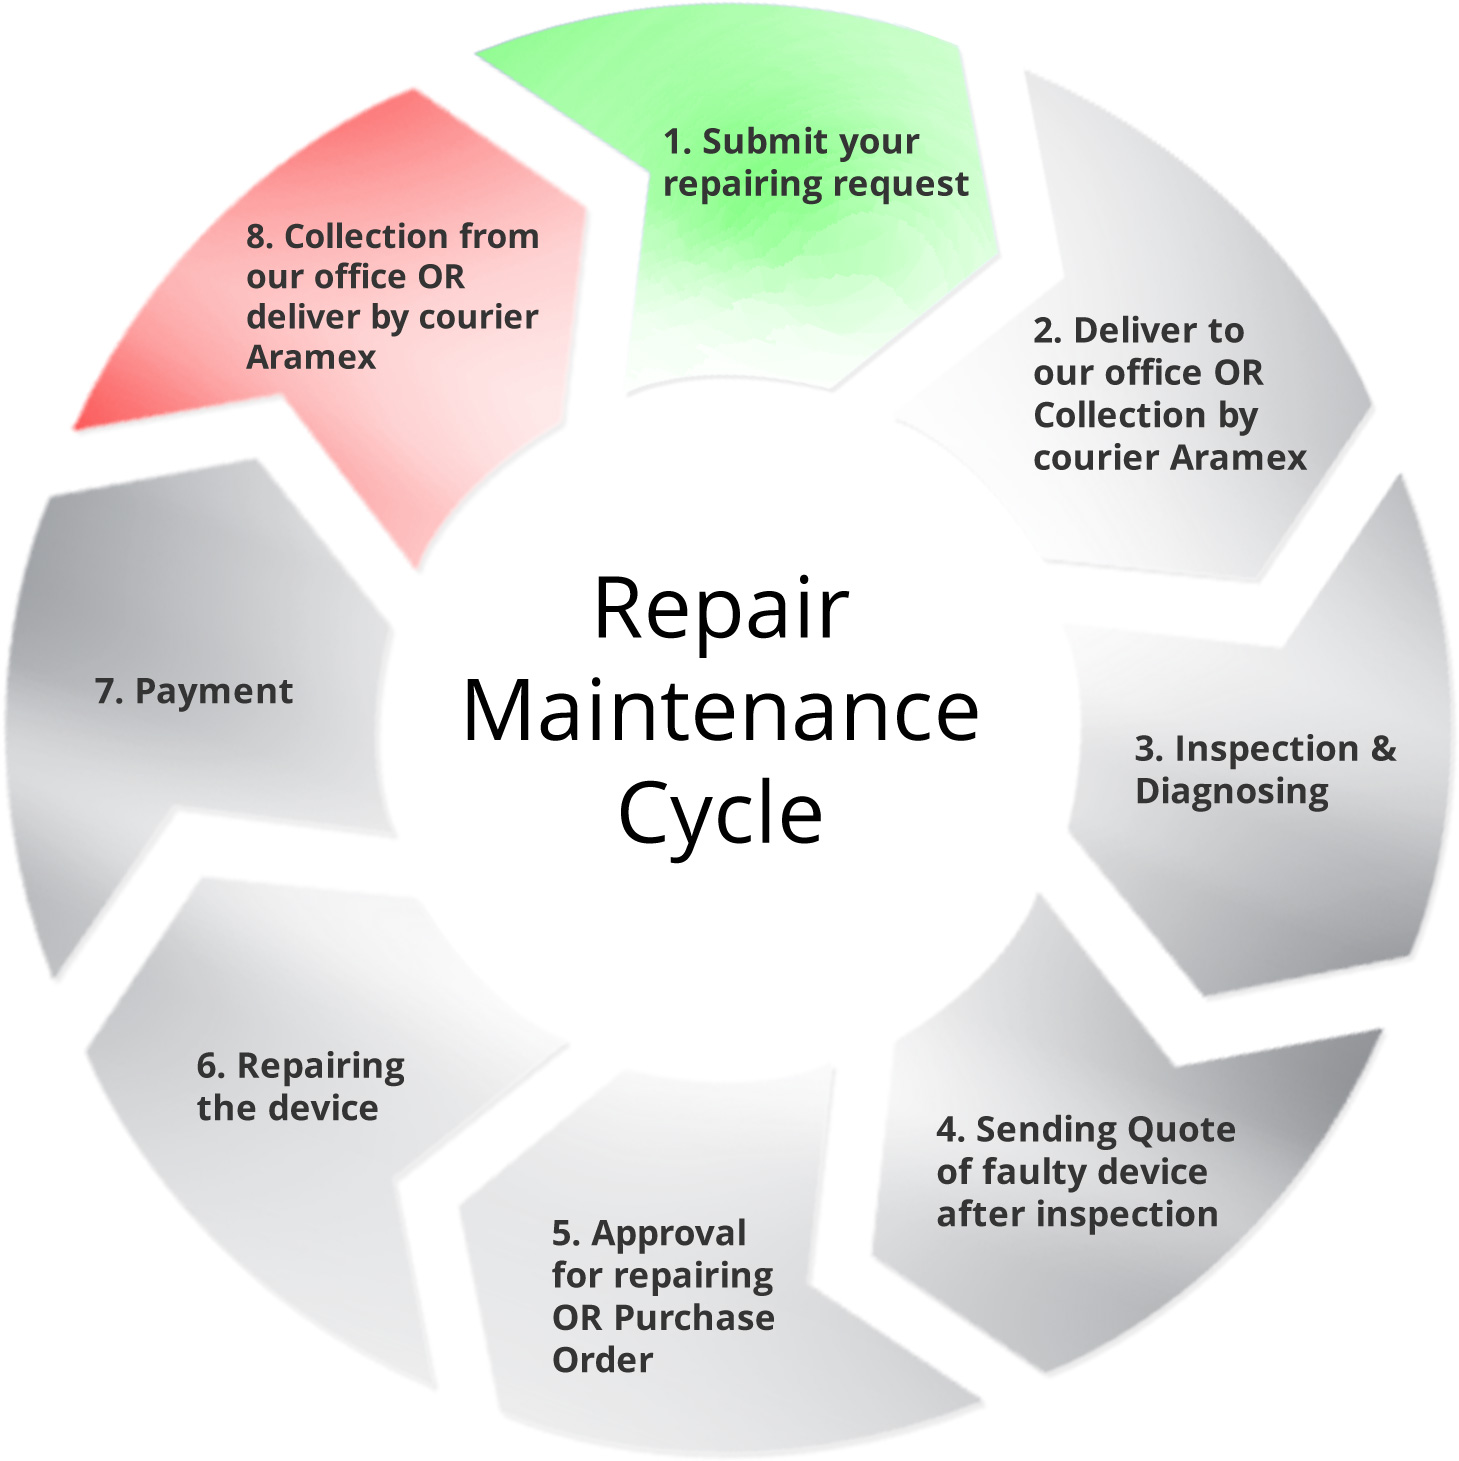 Repair Maintenance Cycle Al Maria Middle East Technologies